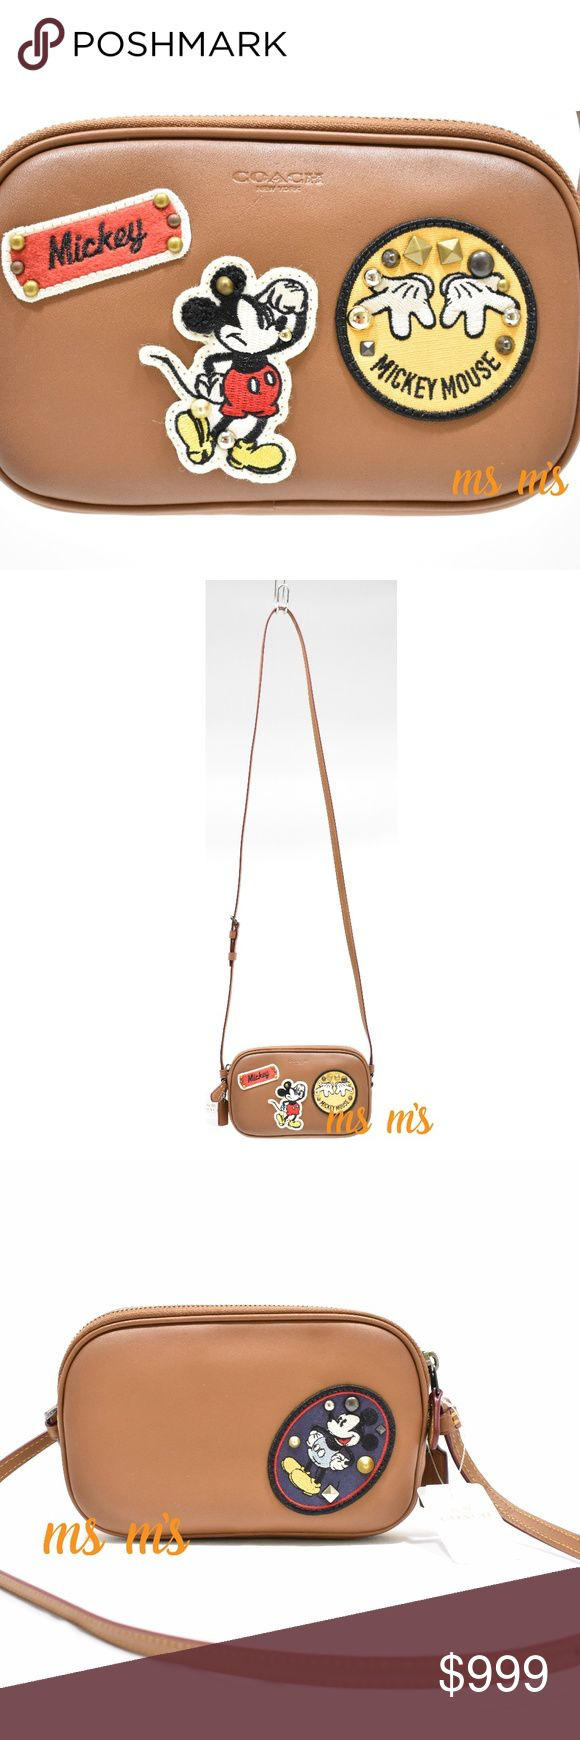 """NWT Coach Disney Mickey Mouse Guaranteed 100% authentic NWT Disney X Coach Crossbody Pouch In Glove Calf Leather With Mickey Mouse Patches Color:  Saddle Multi Glove calf leather Two credit card slots Inside multifunction pocket Double zip closure, fabric lining Adjustable strap with 23"""" drop for shoulder or crossbody wear 7 1/2"""" (L) x 4 1/2"""" (H) x 1 1/2"""" (W) Coach Bags Crossbody Bags"""